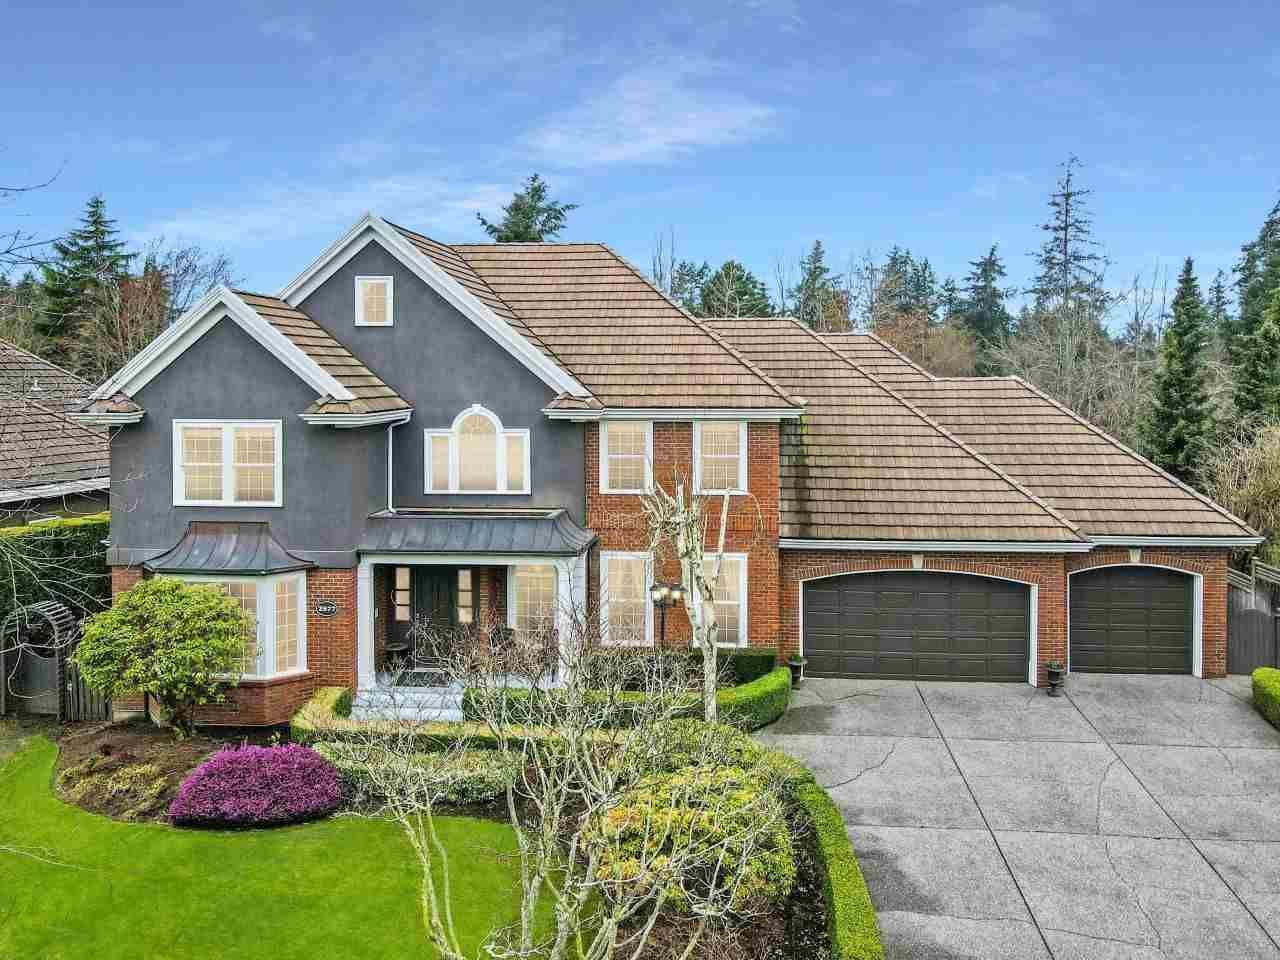 """Main Photo: 2577 138A Street in Surrey: Elgin Chantrell House for sale in """"Peninsula Park"""" (South Surrey White Rock)  : MLS®# R2556090"""